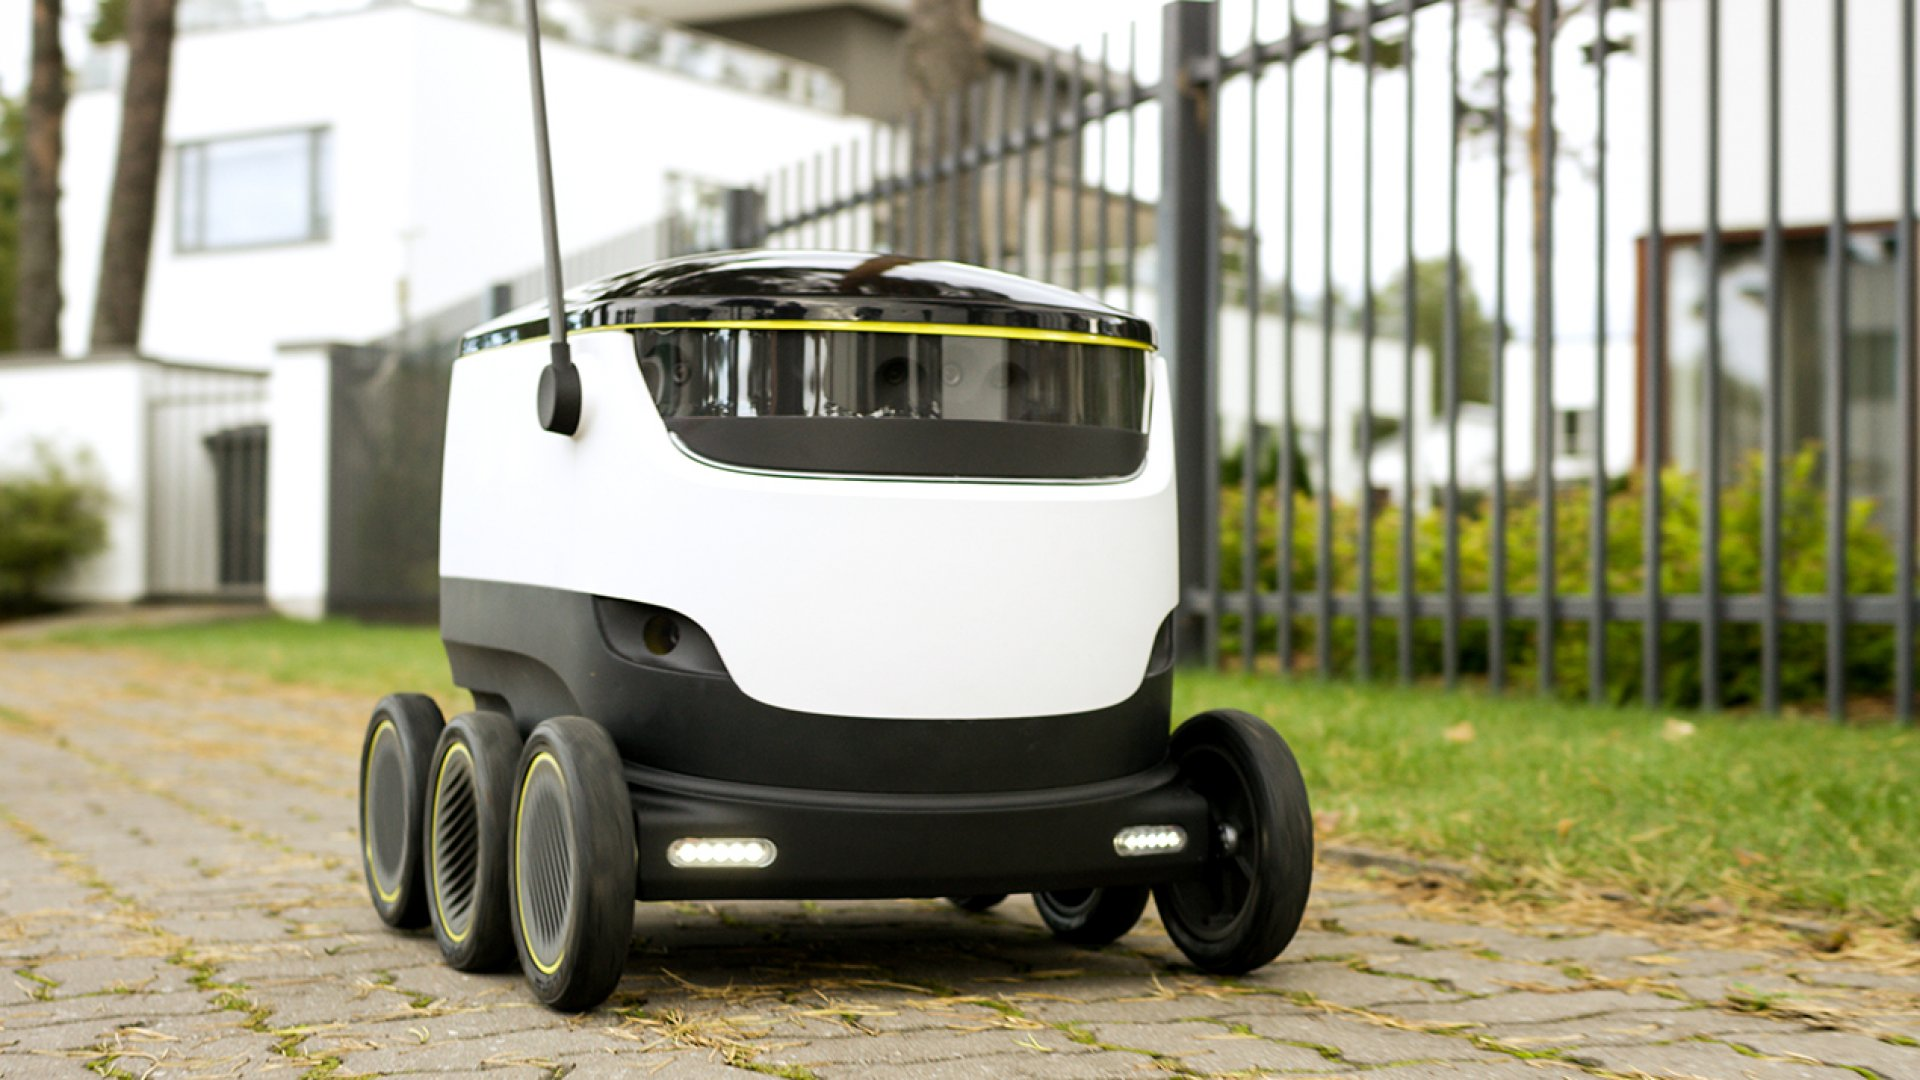 Skype Founders Bring Their Food Delivery Bots to the U.S.